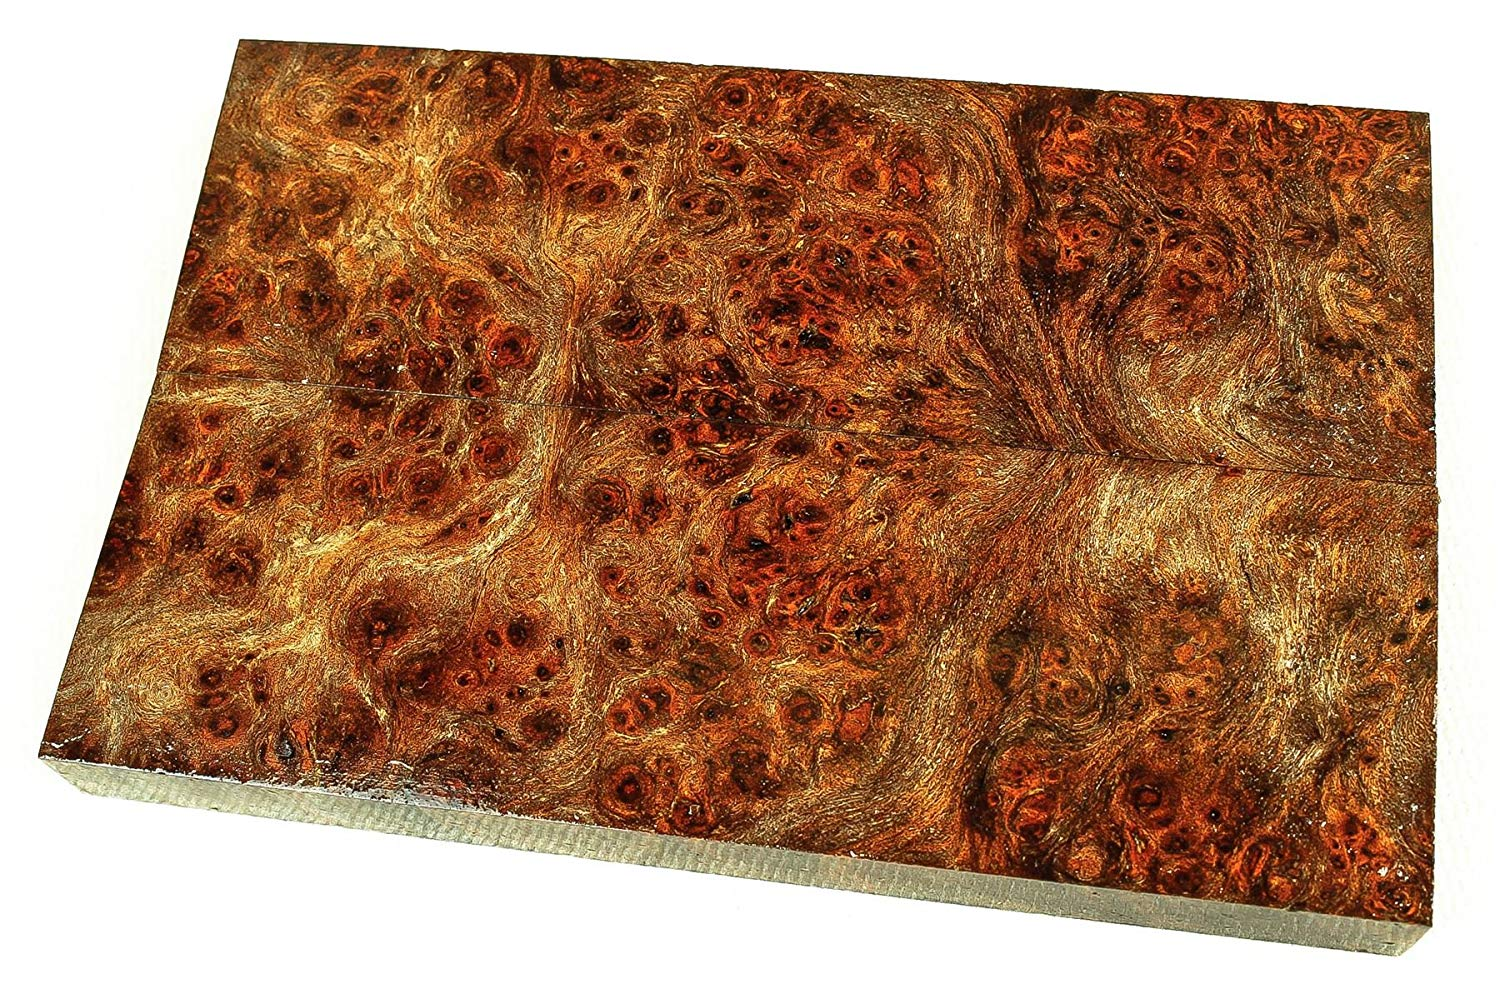 Gmelia Burl High Figured Rare Exotic Wood Knife Scales, Stabilized SCL6493